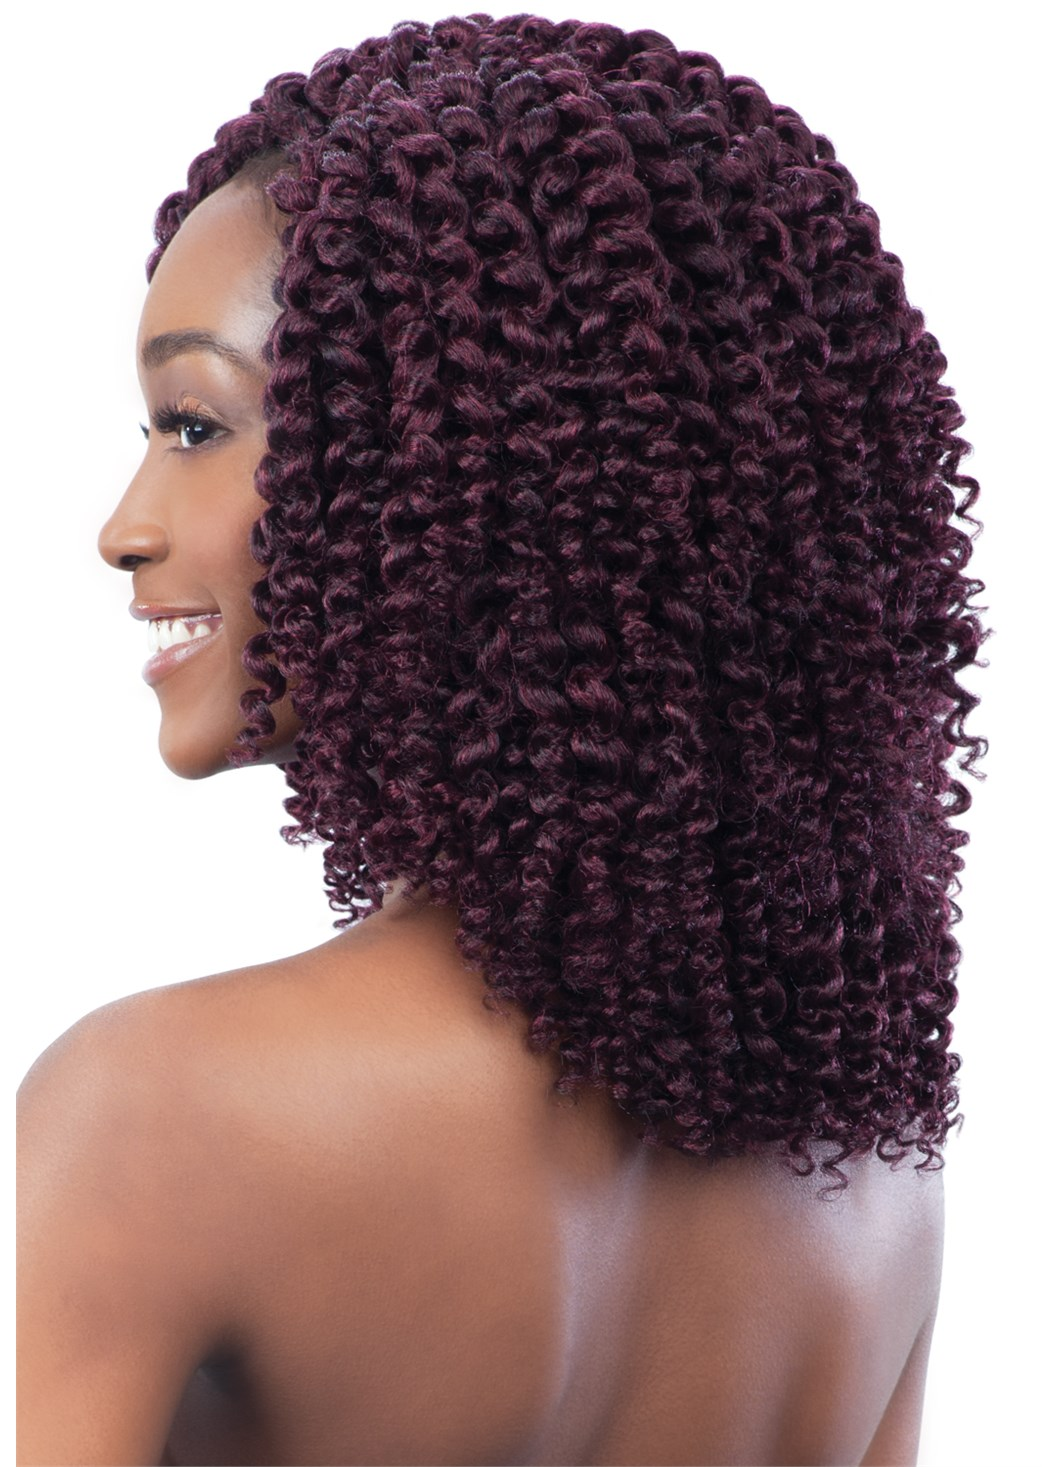 Crochet Hair Spirals : ... about SPIRAL WAND CURL - MODEL MODEL GLANCE SYNTHETIC CROCHET BRAID